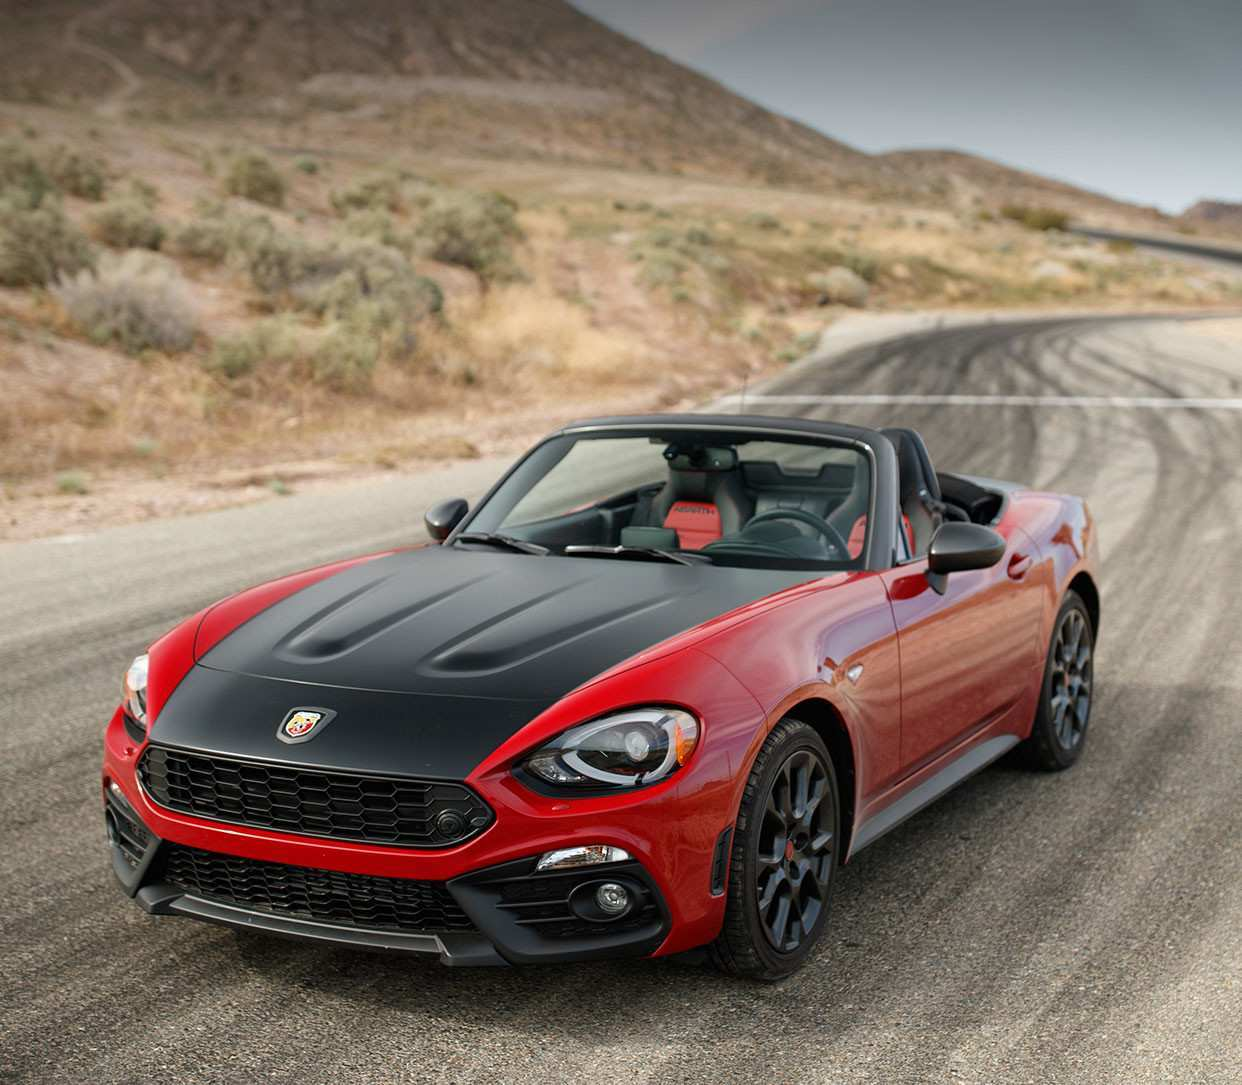 51 All New 2019 Fiat Spider Review